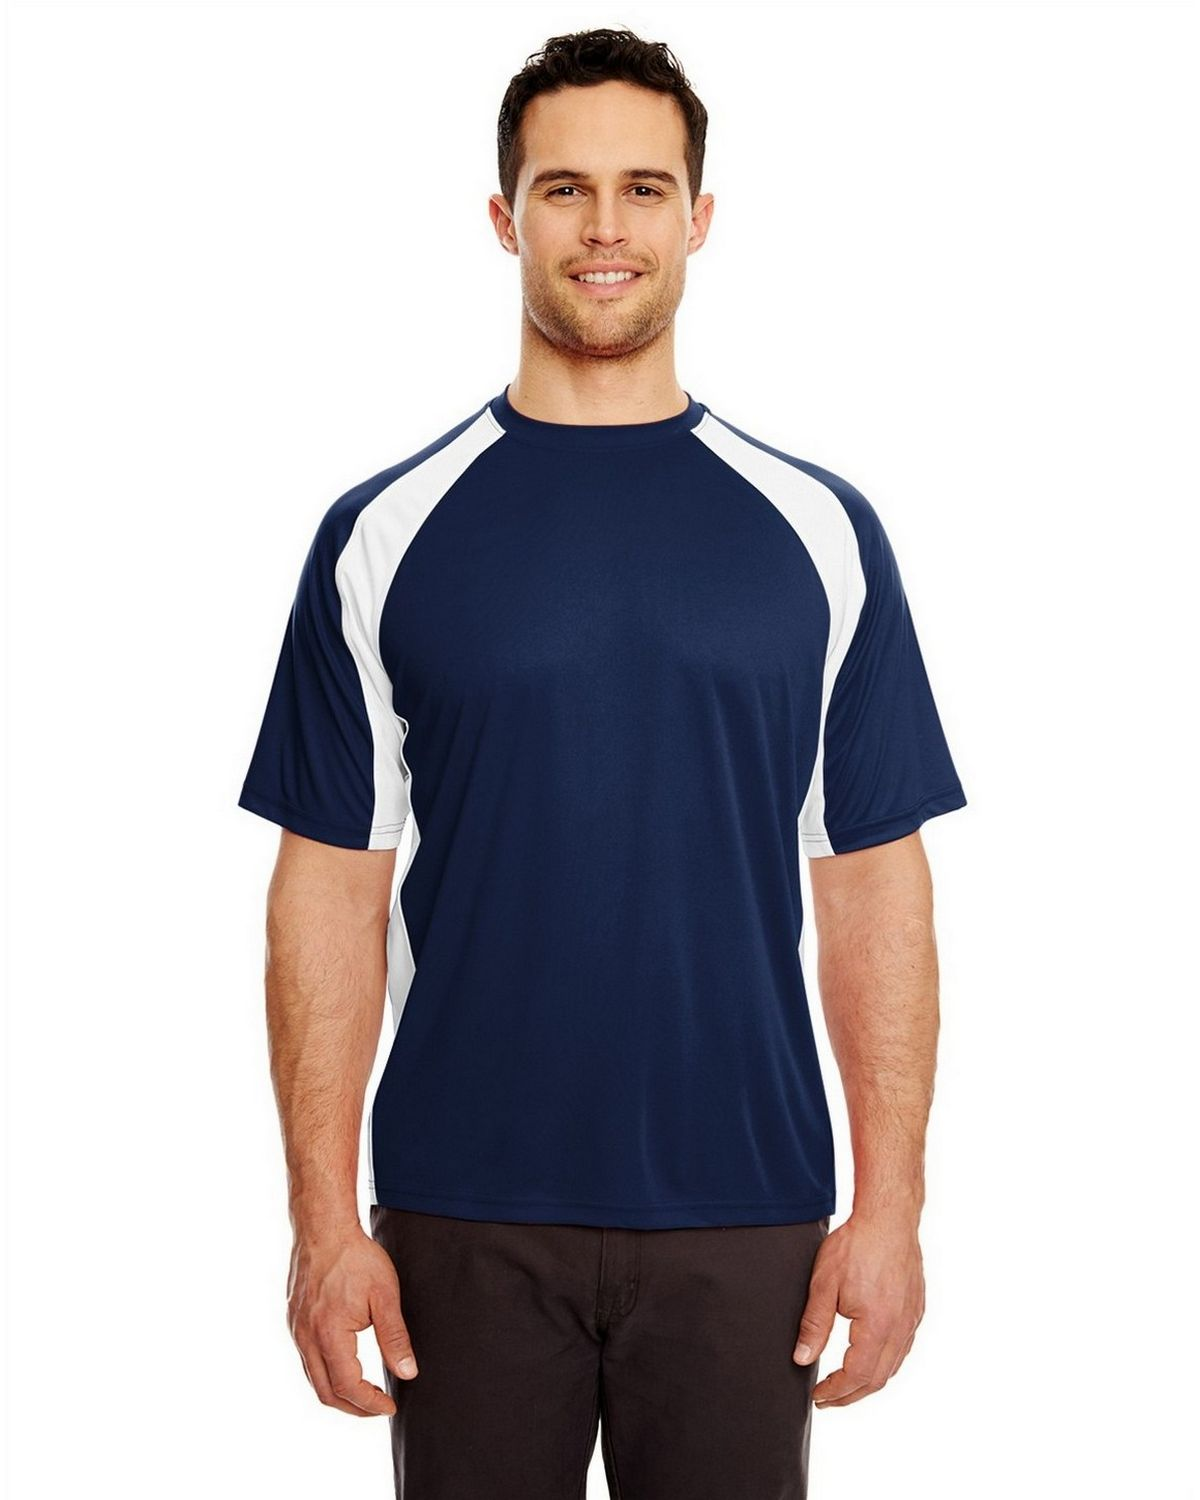 Ultraclub 8421 Sport Two Tone Performance Tee - Navy/ White - L 8421